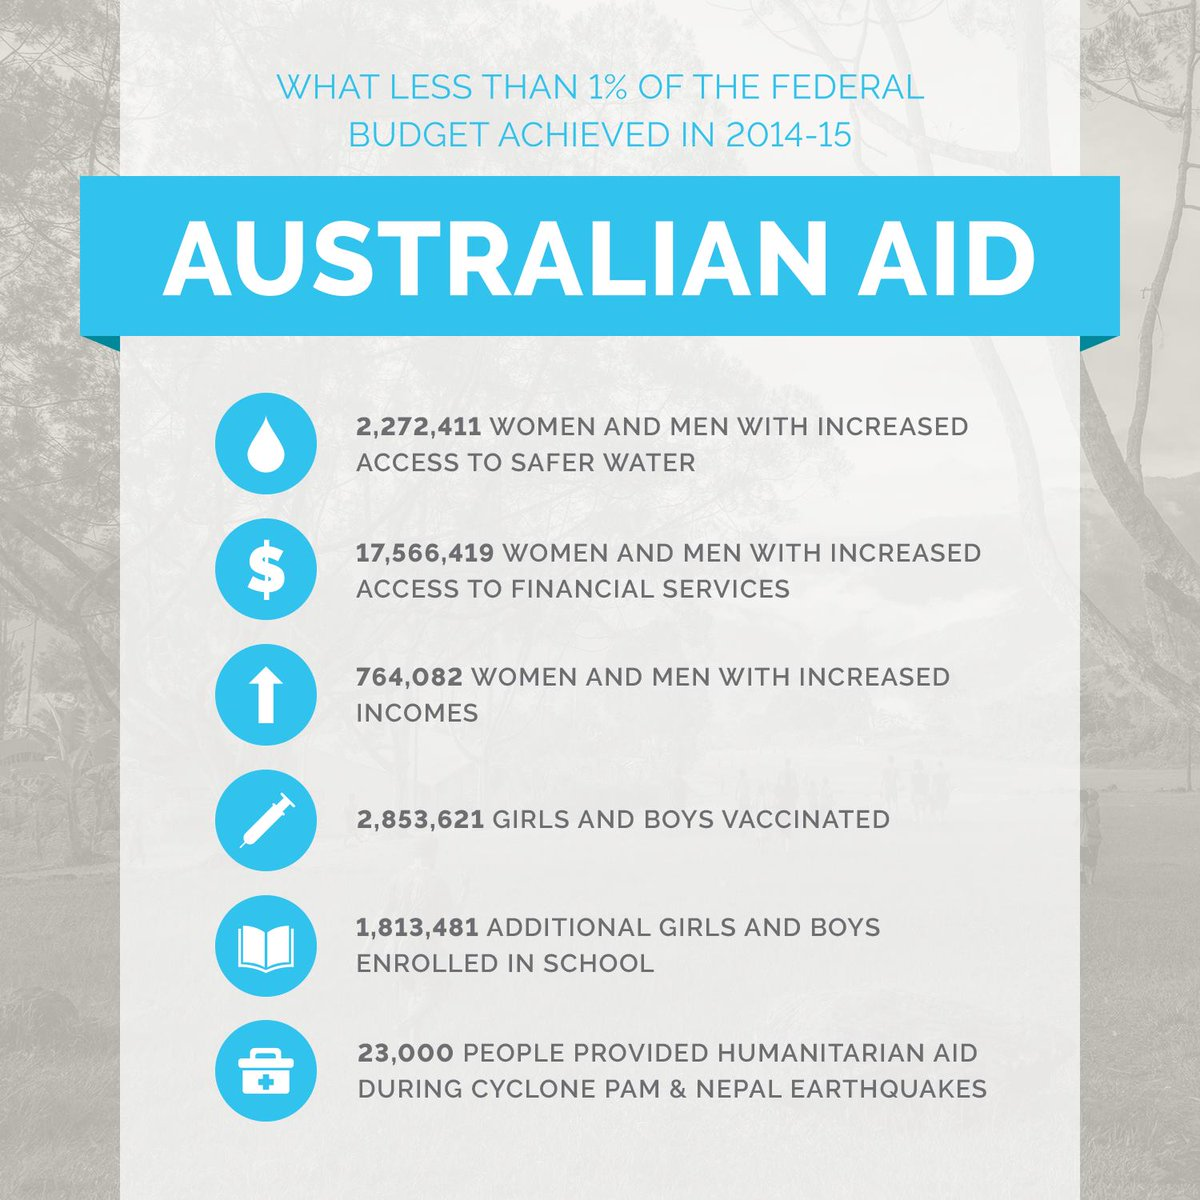 #AustralianAid saves lives. Cutting $224m from the aid budget hurts our collective future. RT if you agree. https://t.co/n7qKMuBjNP